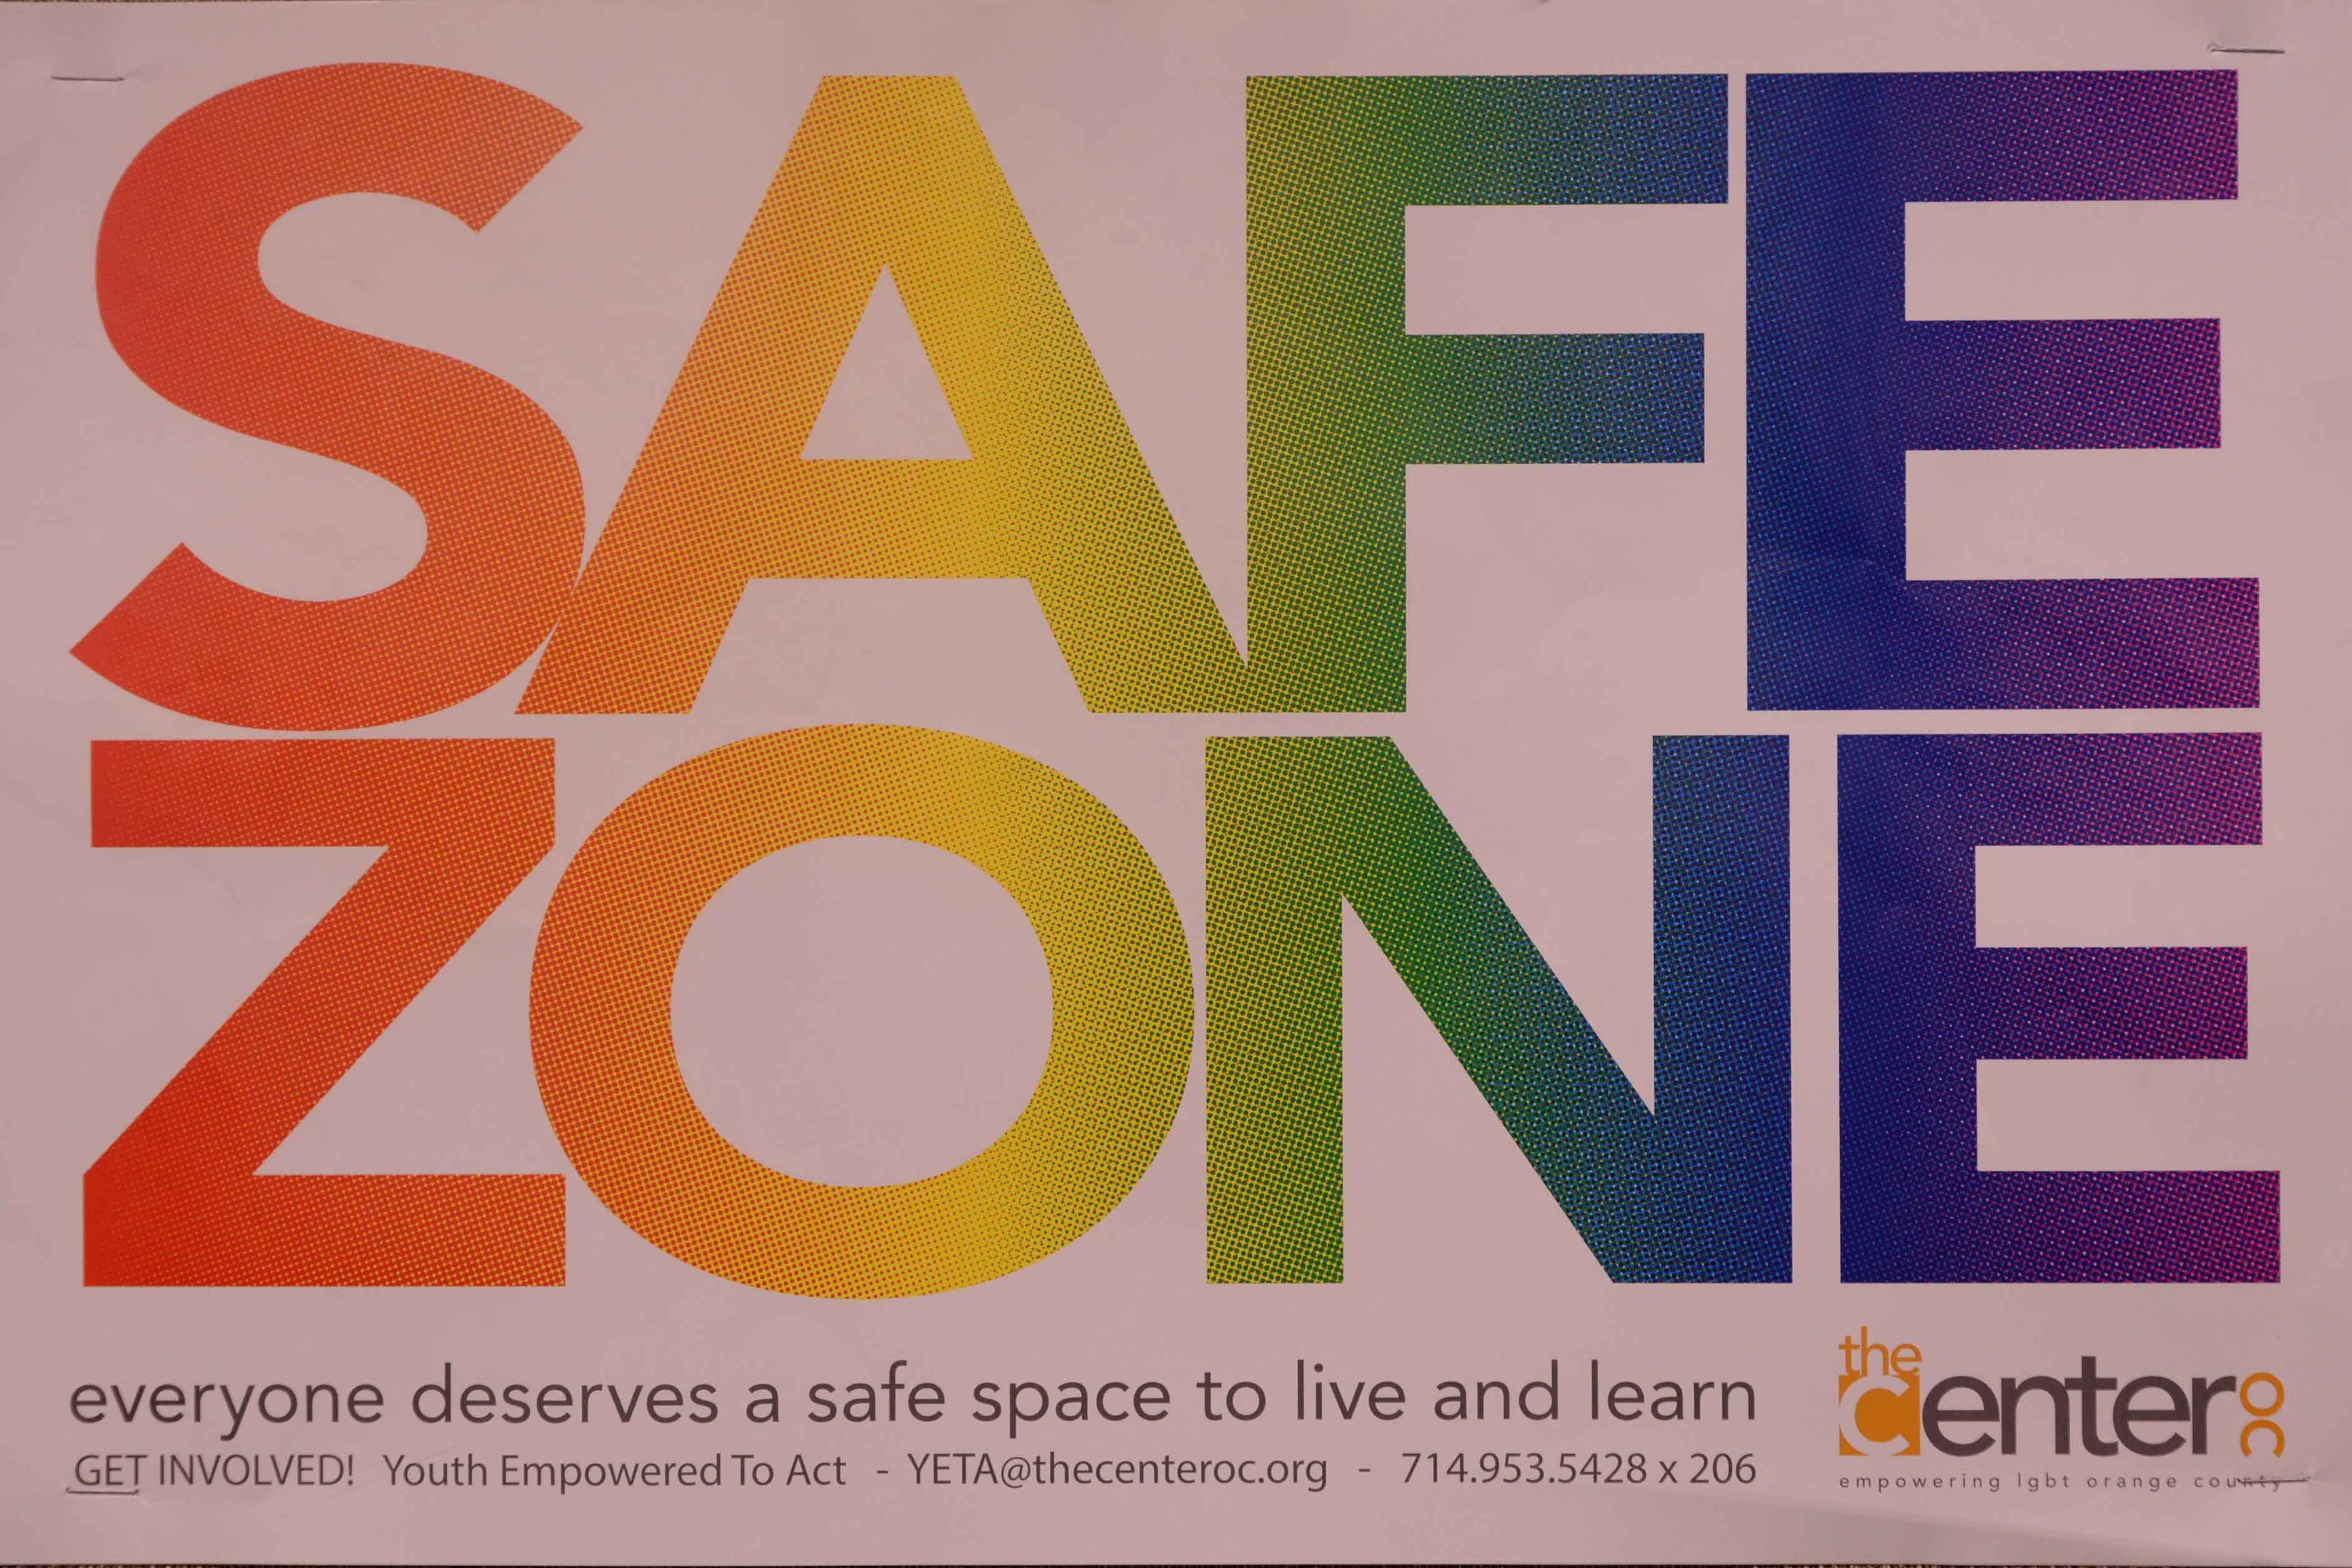 SJHHS has a plethora of these posters plastered on classroom windows, illustrating to all students that they have a safe place at school and with their teachers.